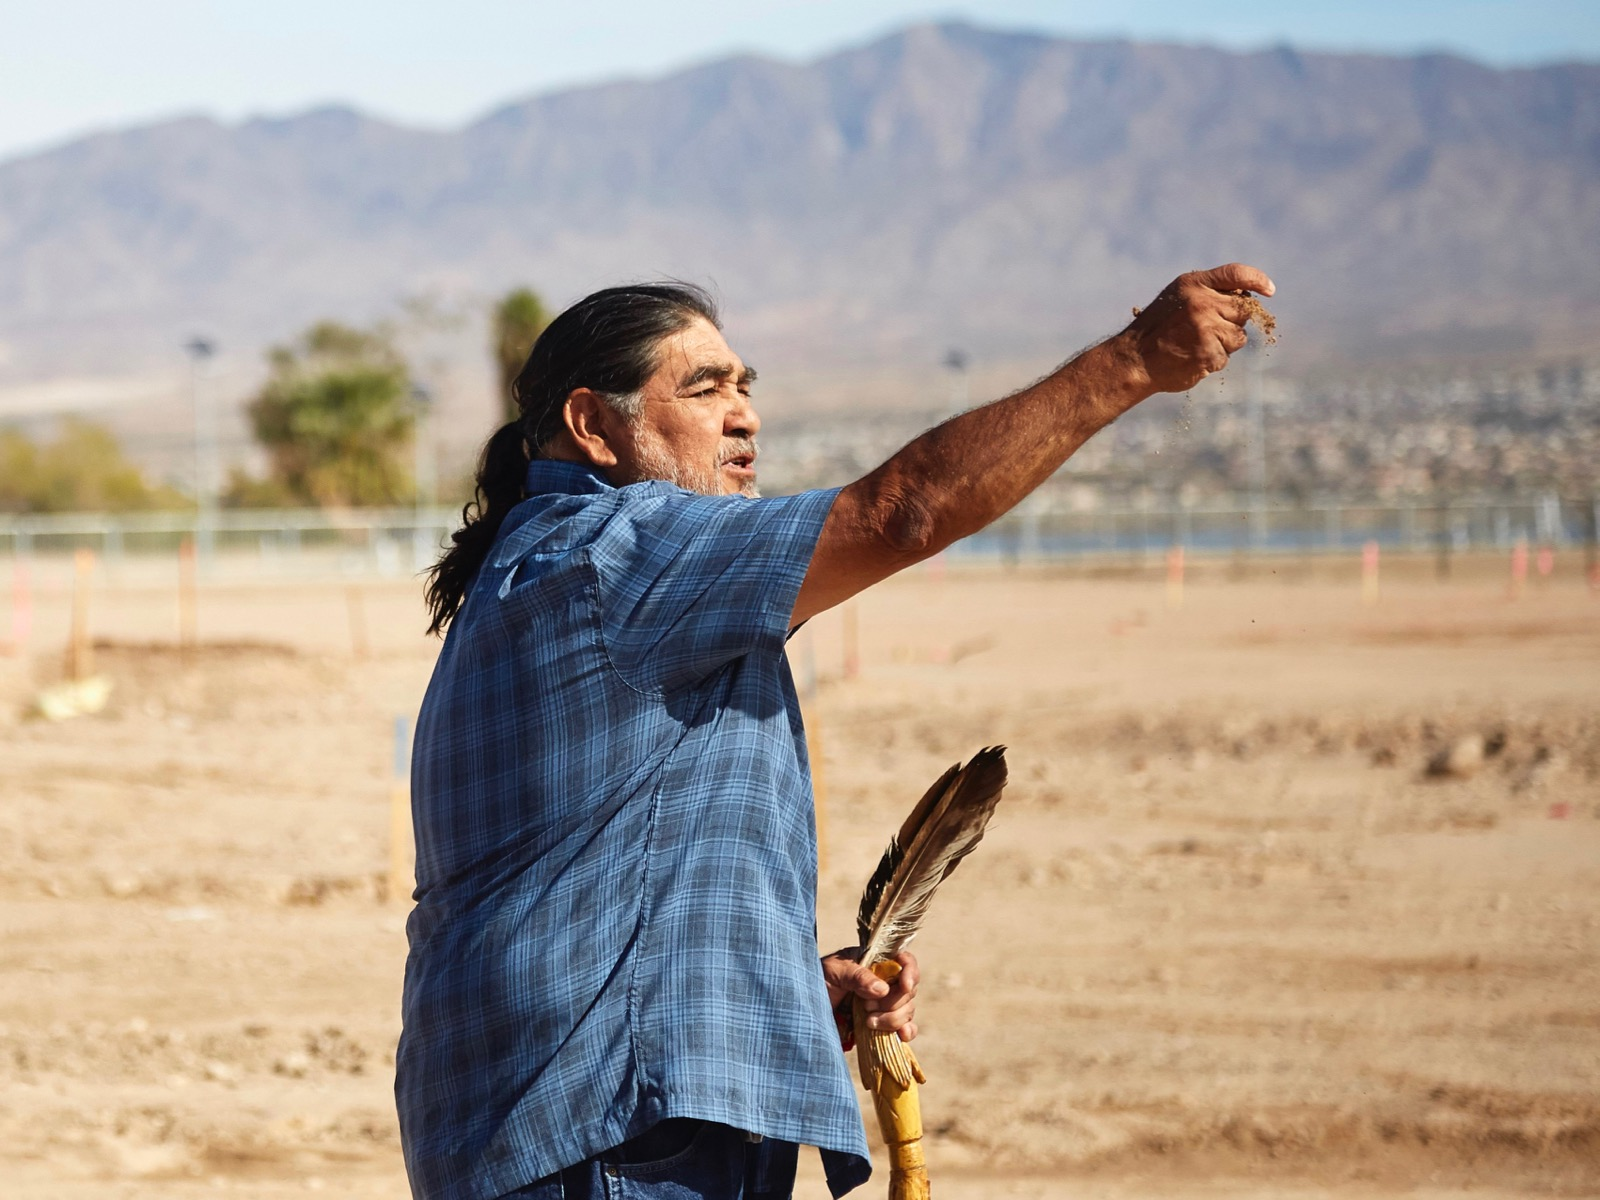 Chemehuevi Tribe on track to finish new casino in the spring of 2019